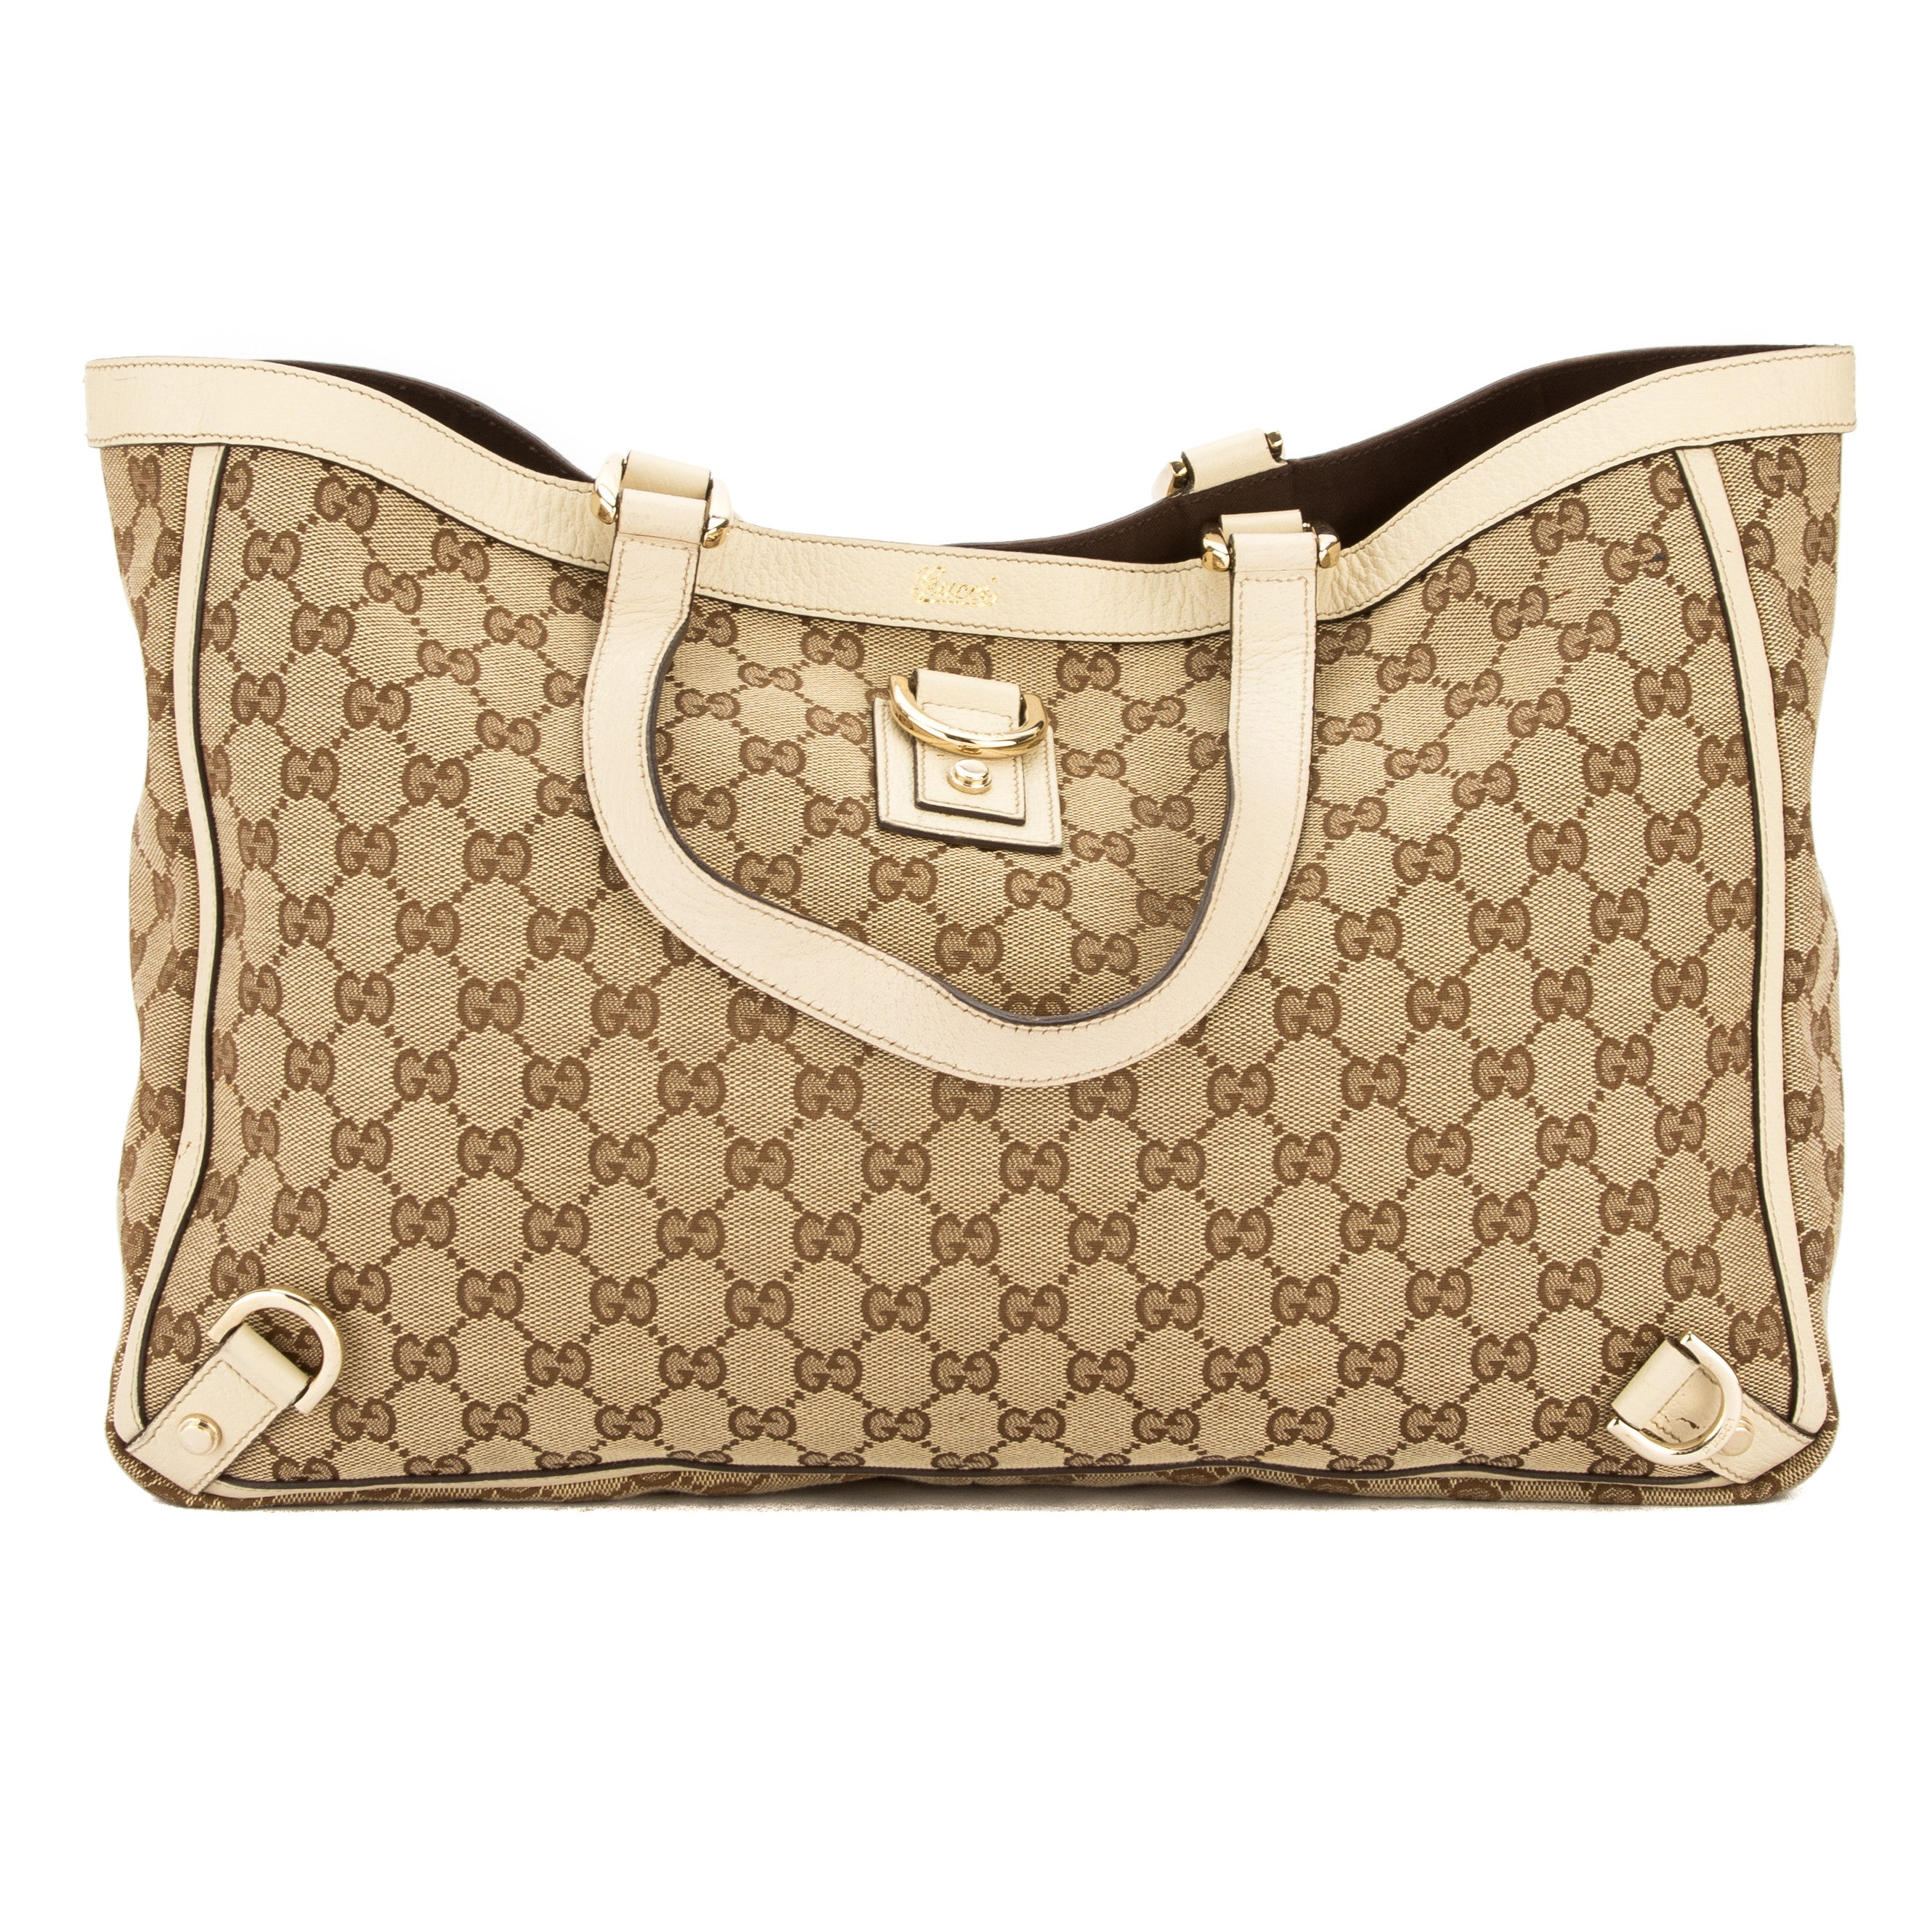 0501f76842df Gucci Ivory Leather GG Supreme Canvas Tote Bag (Pre Owned) - 3565003 ...